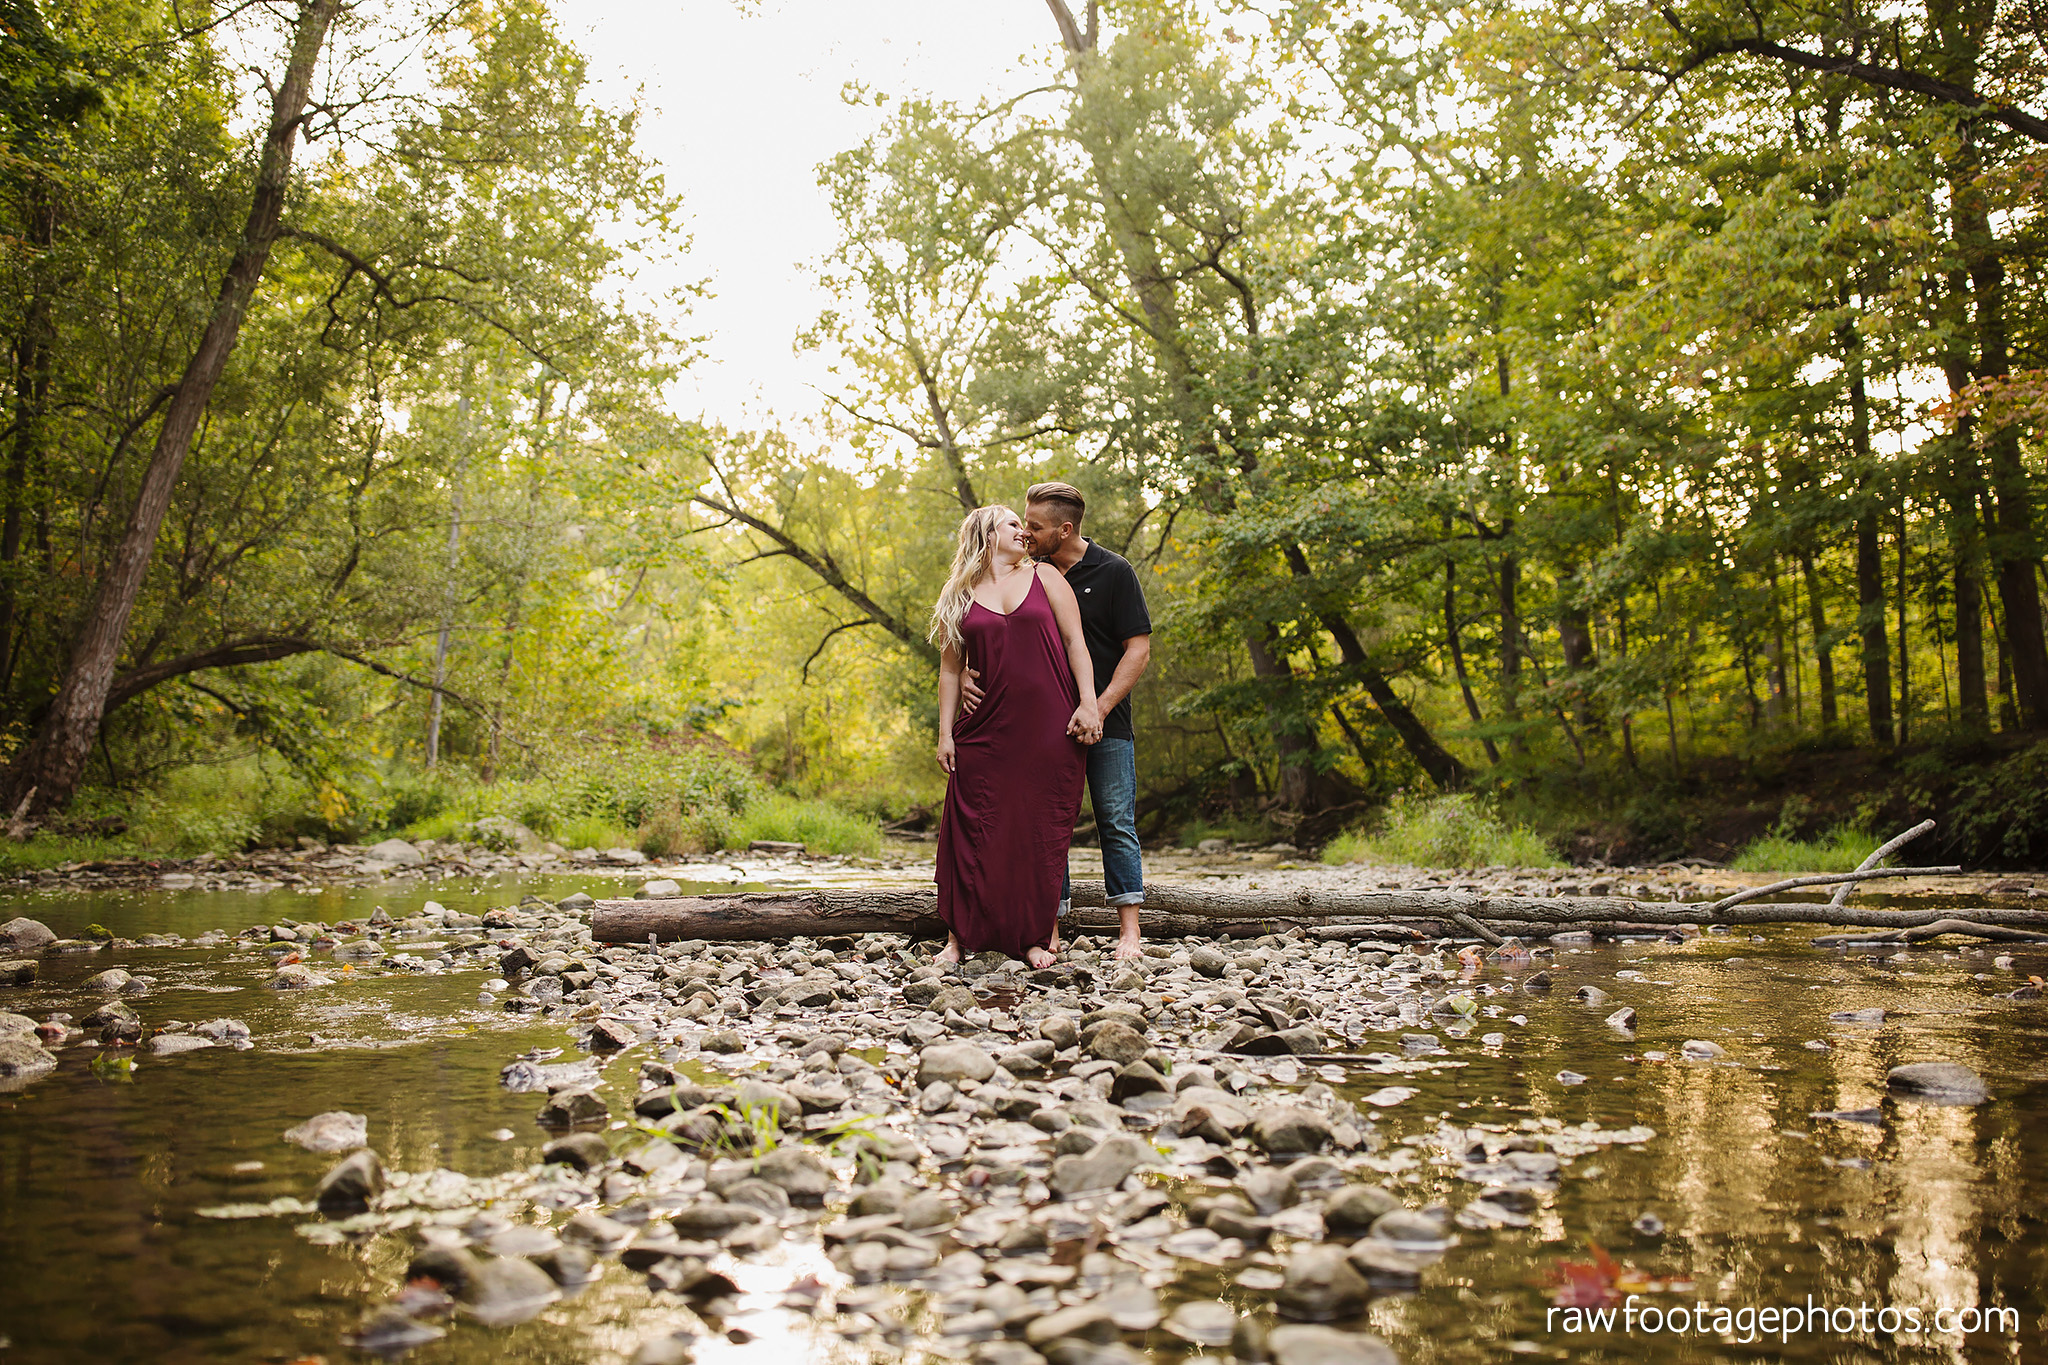 london_ontario_wedding_photographer-woodsy_engagement_session-e_session-engagement_photos-medway_creek-medway_heritage_forest-raw_forest_photography025.jpg